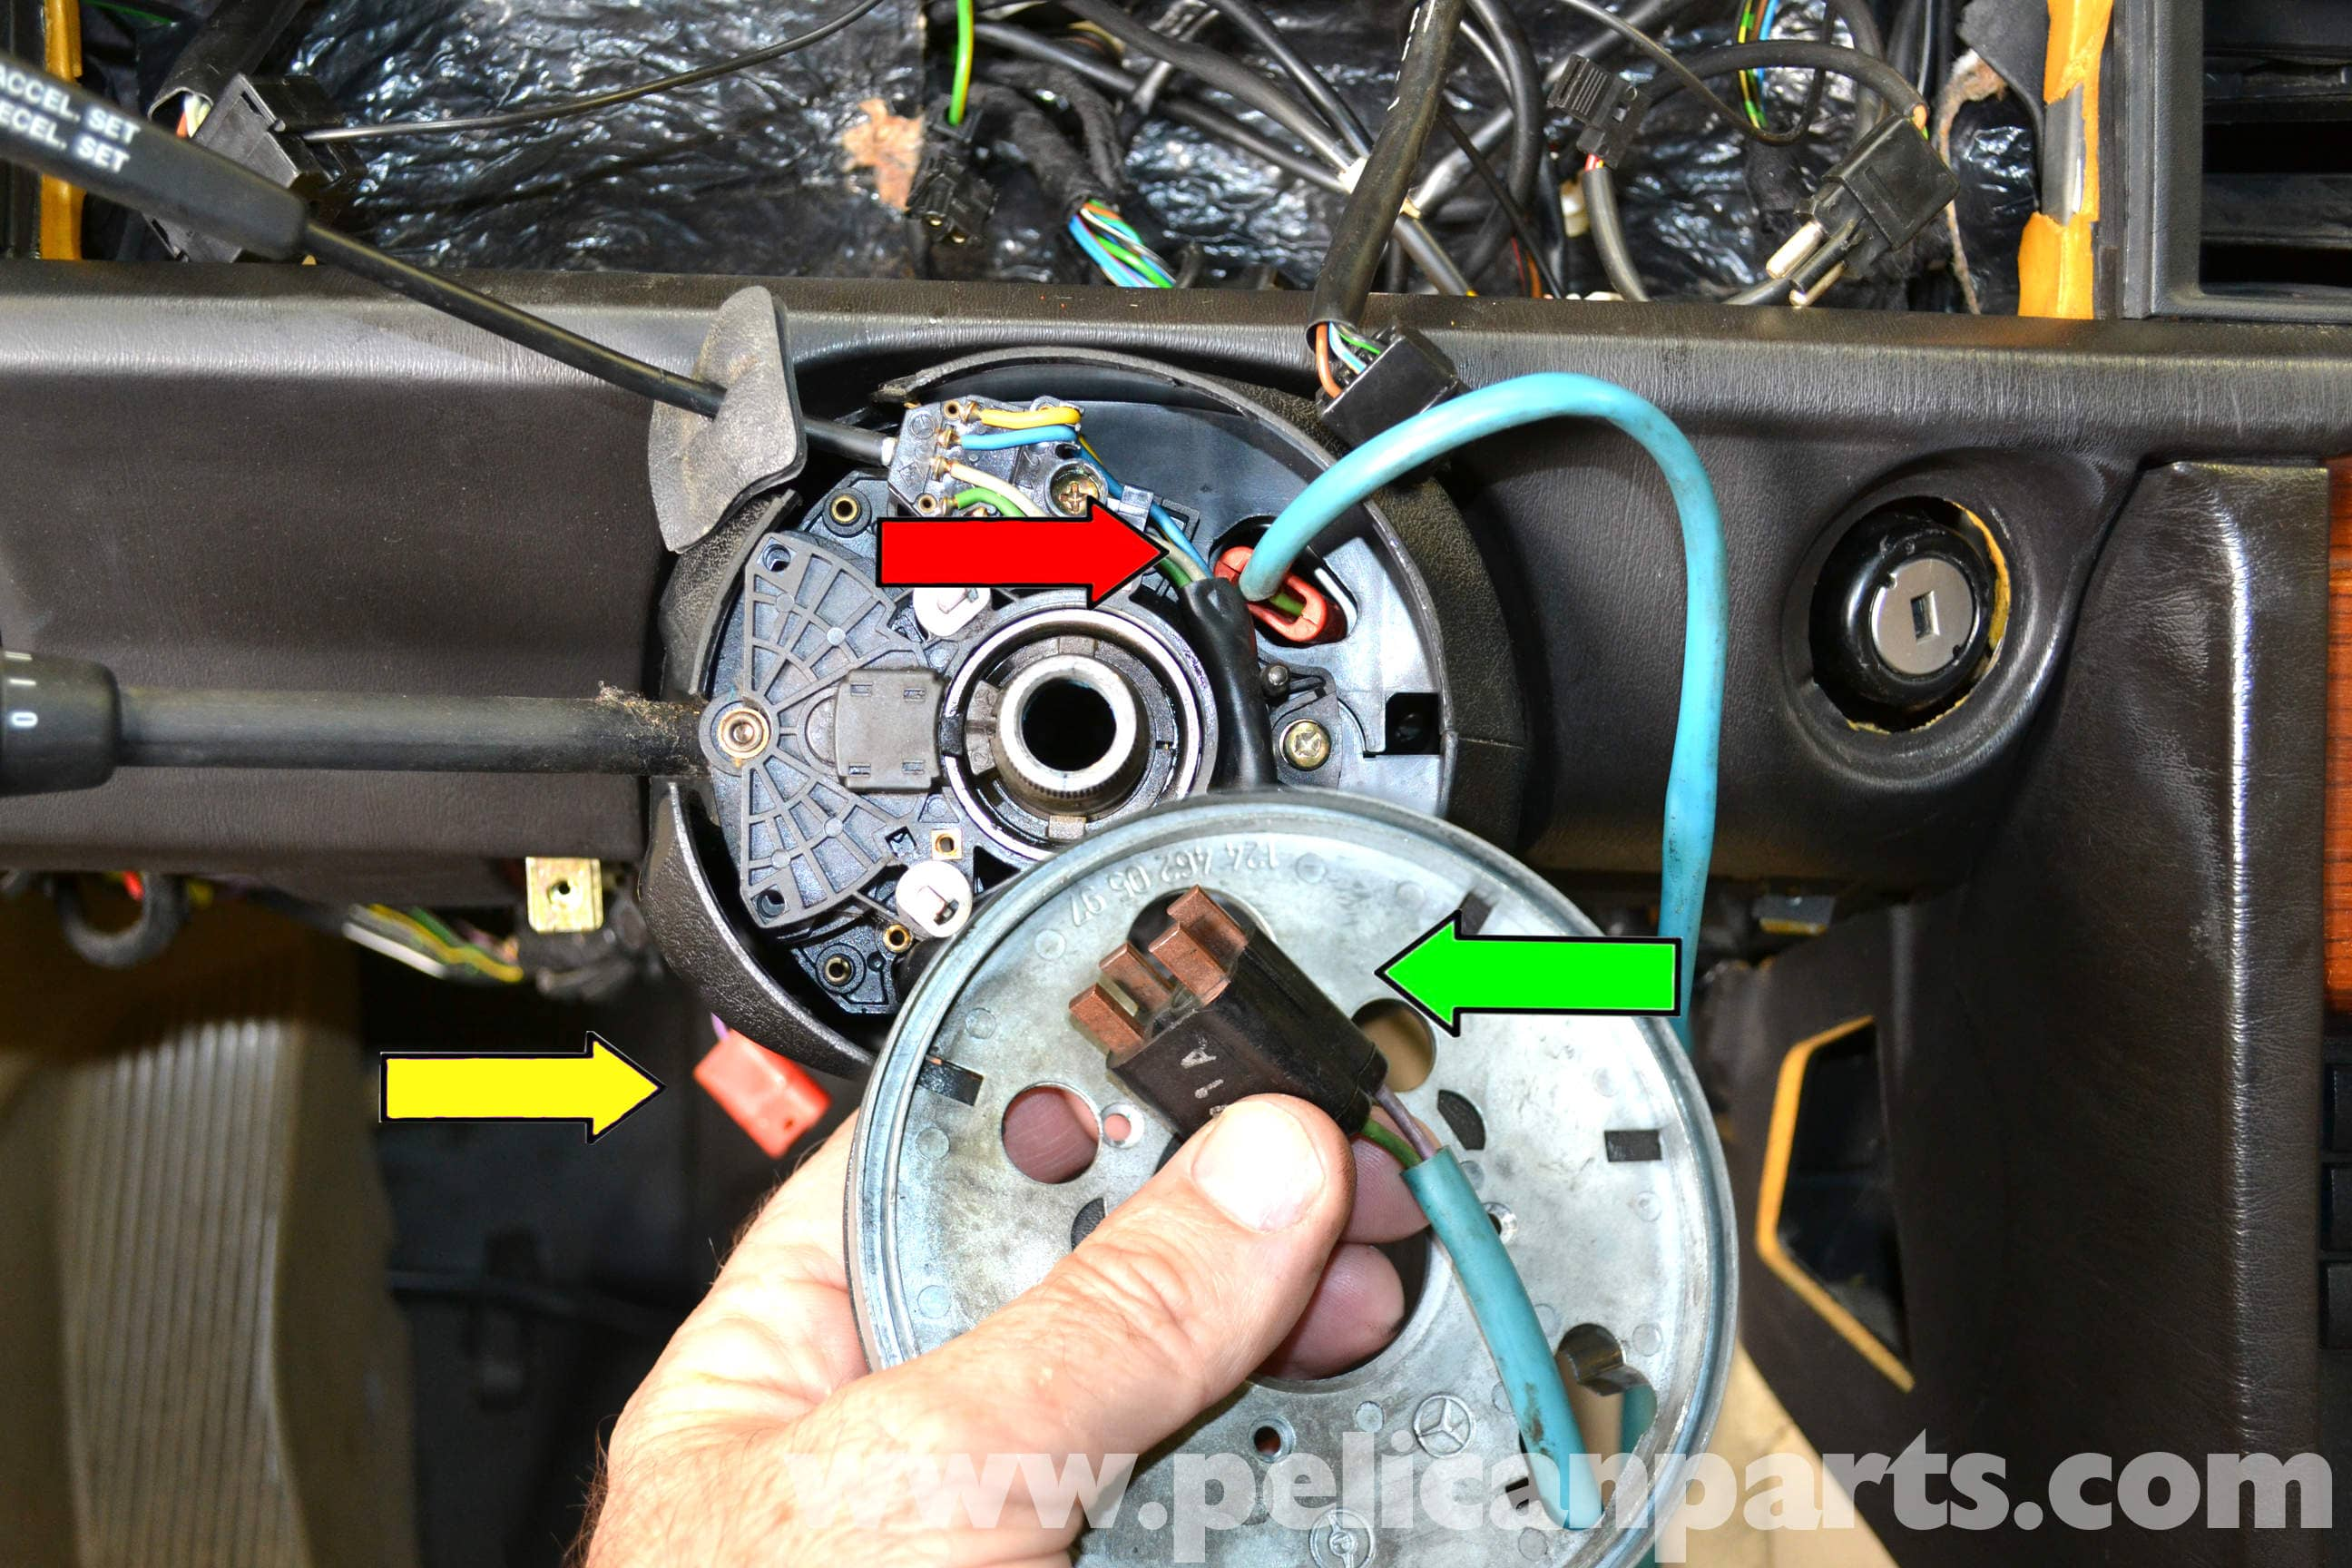 Mercedes-Benz 190E Ignition Switch and Lock Replacement | W201 1987 ...